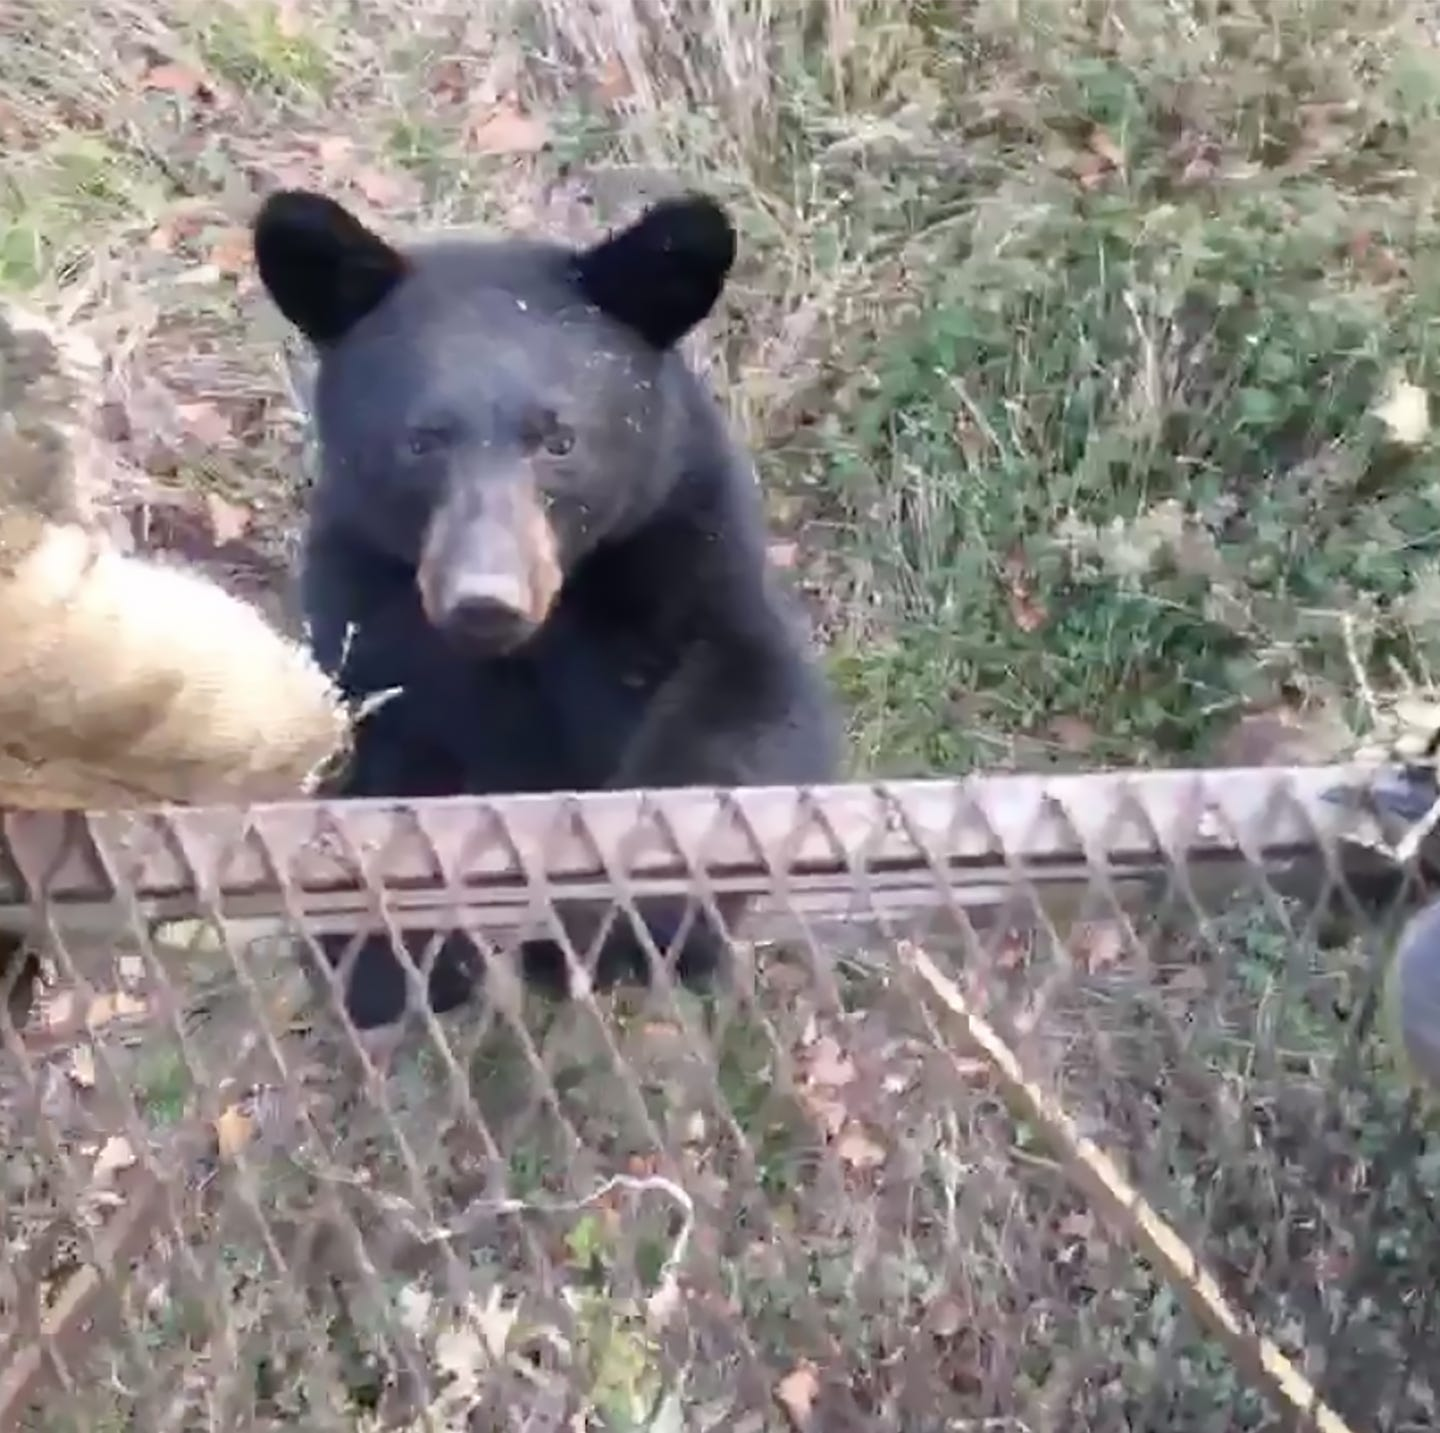 Jordan Coopwood captured video of a young bear climbing into the hunting stand he and friend Andrew Smith were sitting in.